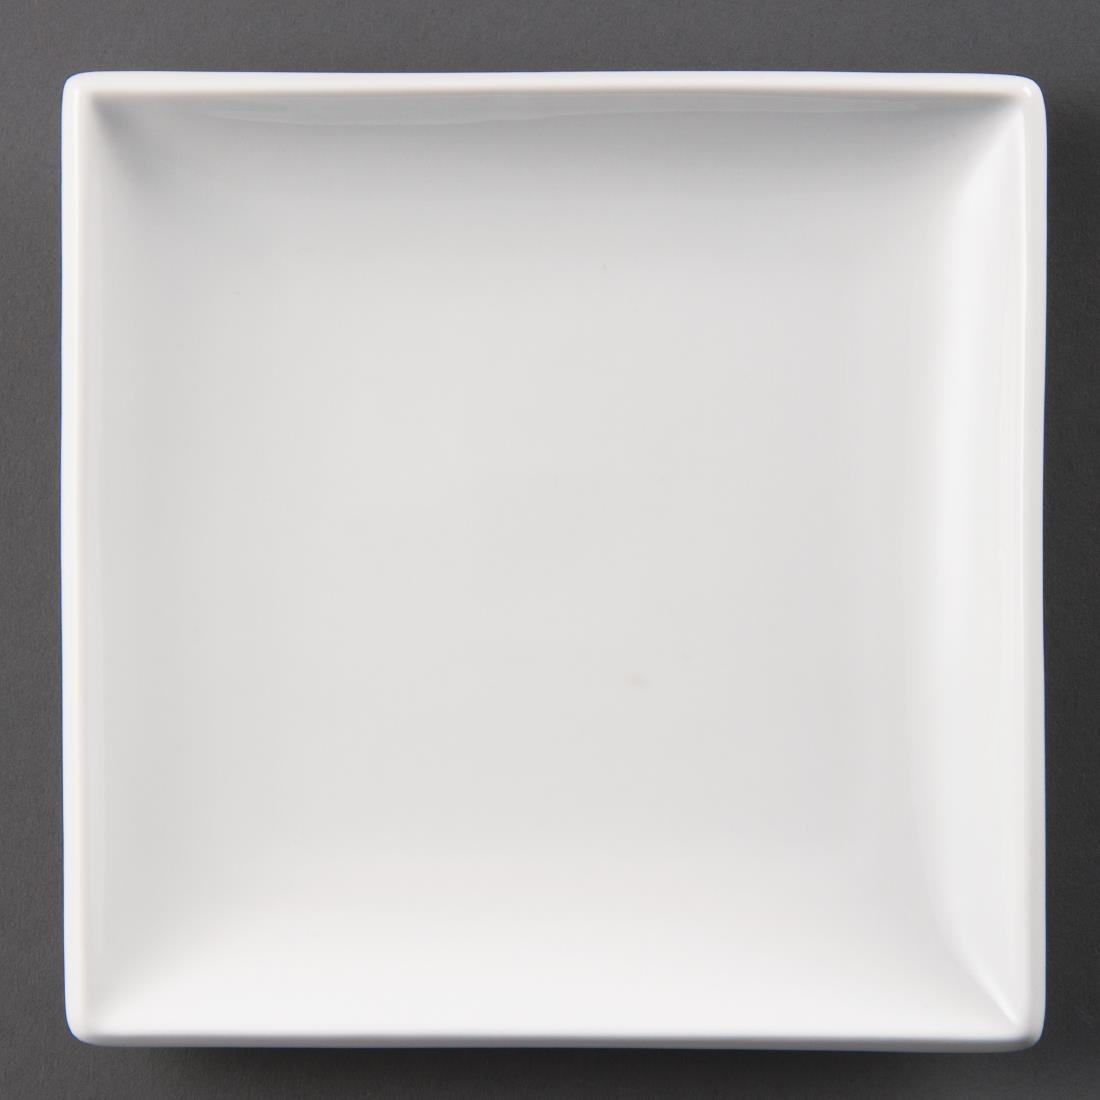 Olympia Whiteware Square Plates 240mm